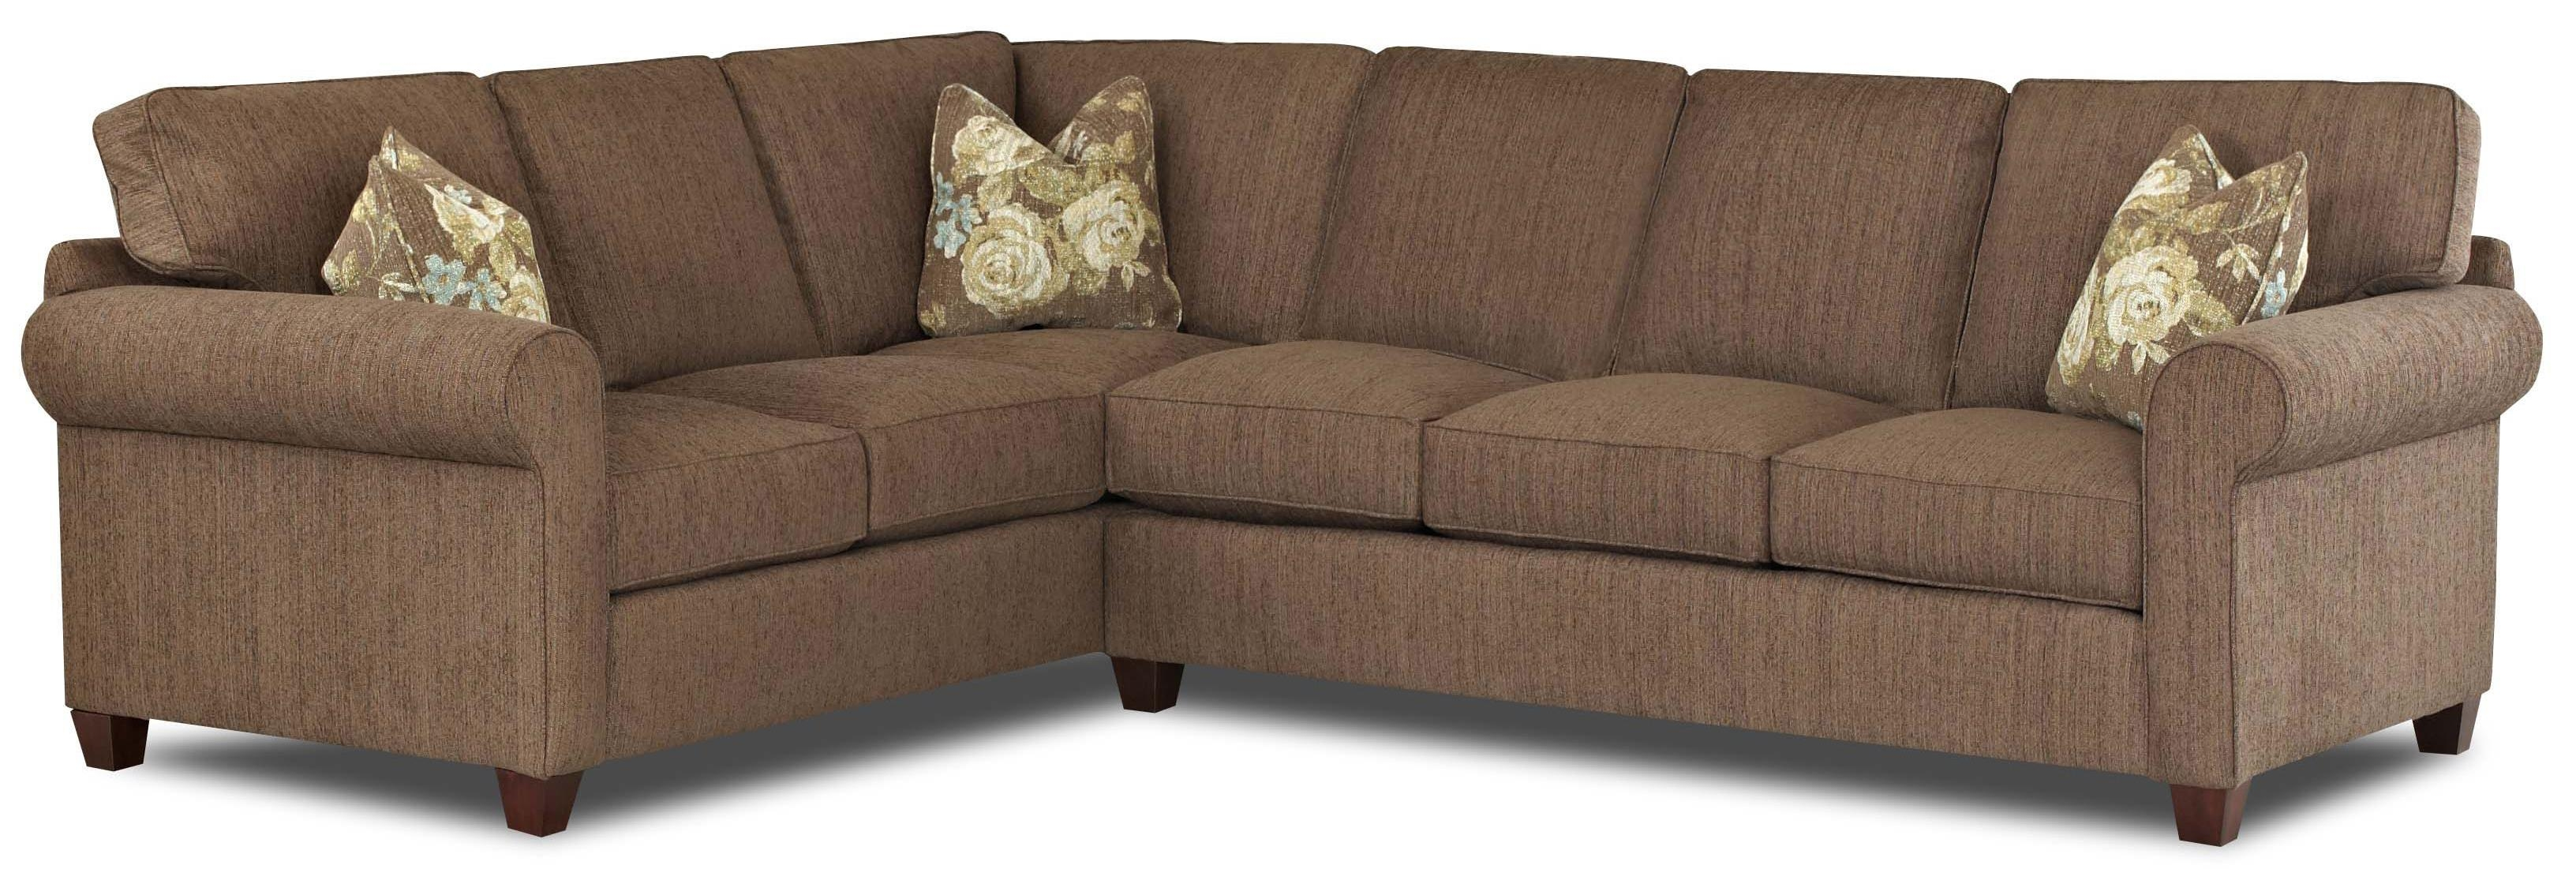 Klaussner Lillington Distinctions Transitional 2 Piece Sectional With Regard To 2 Piece Sofas (Image 9 of 20)